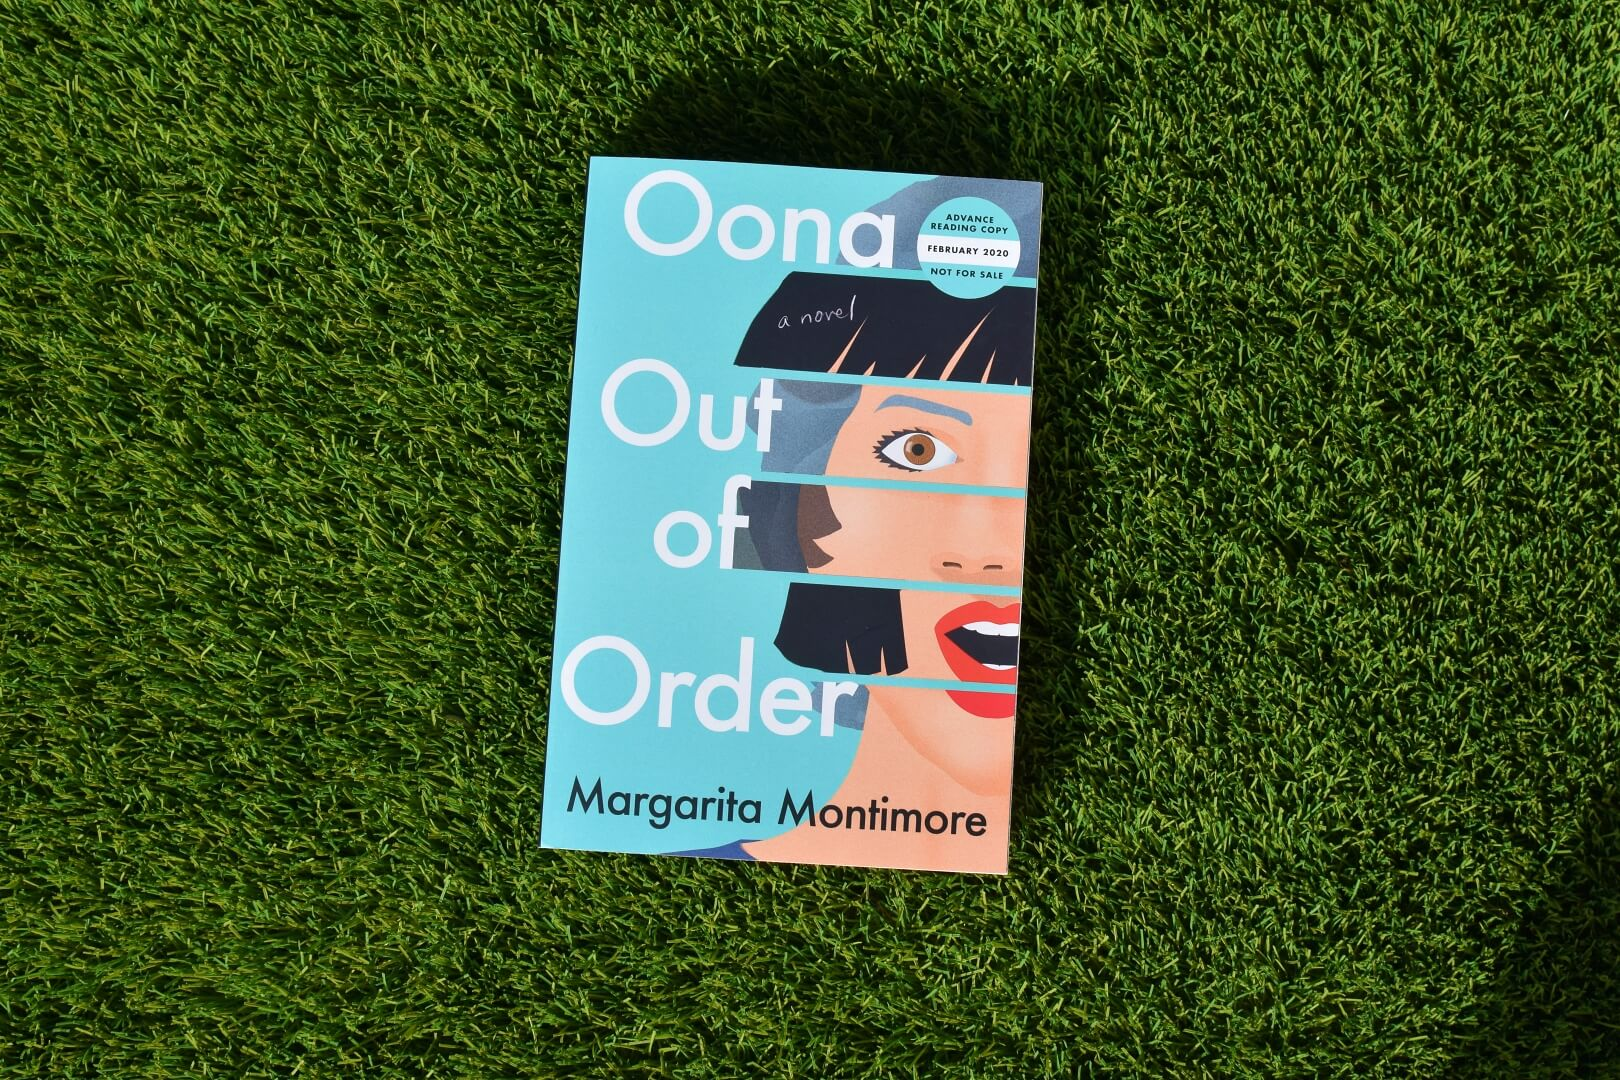 oona out of order review - book club chat